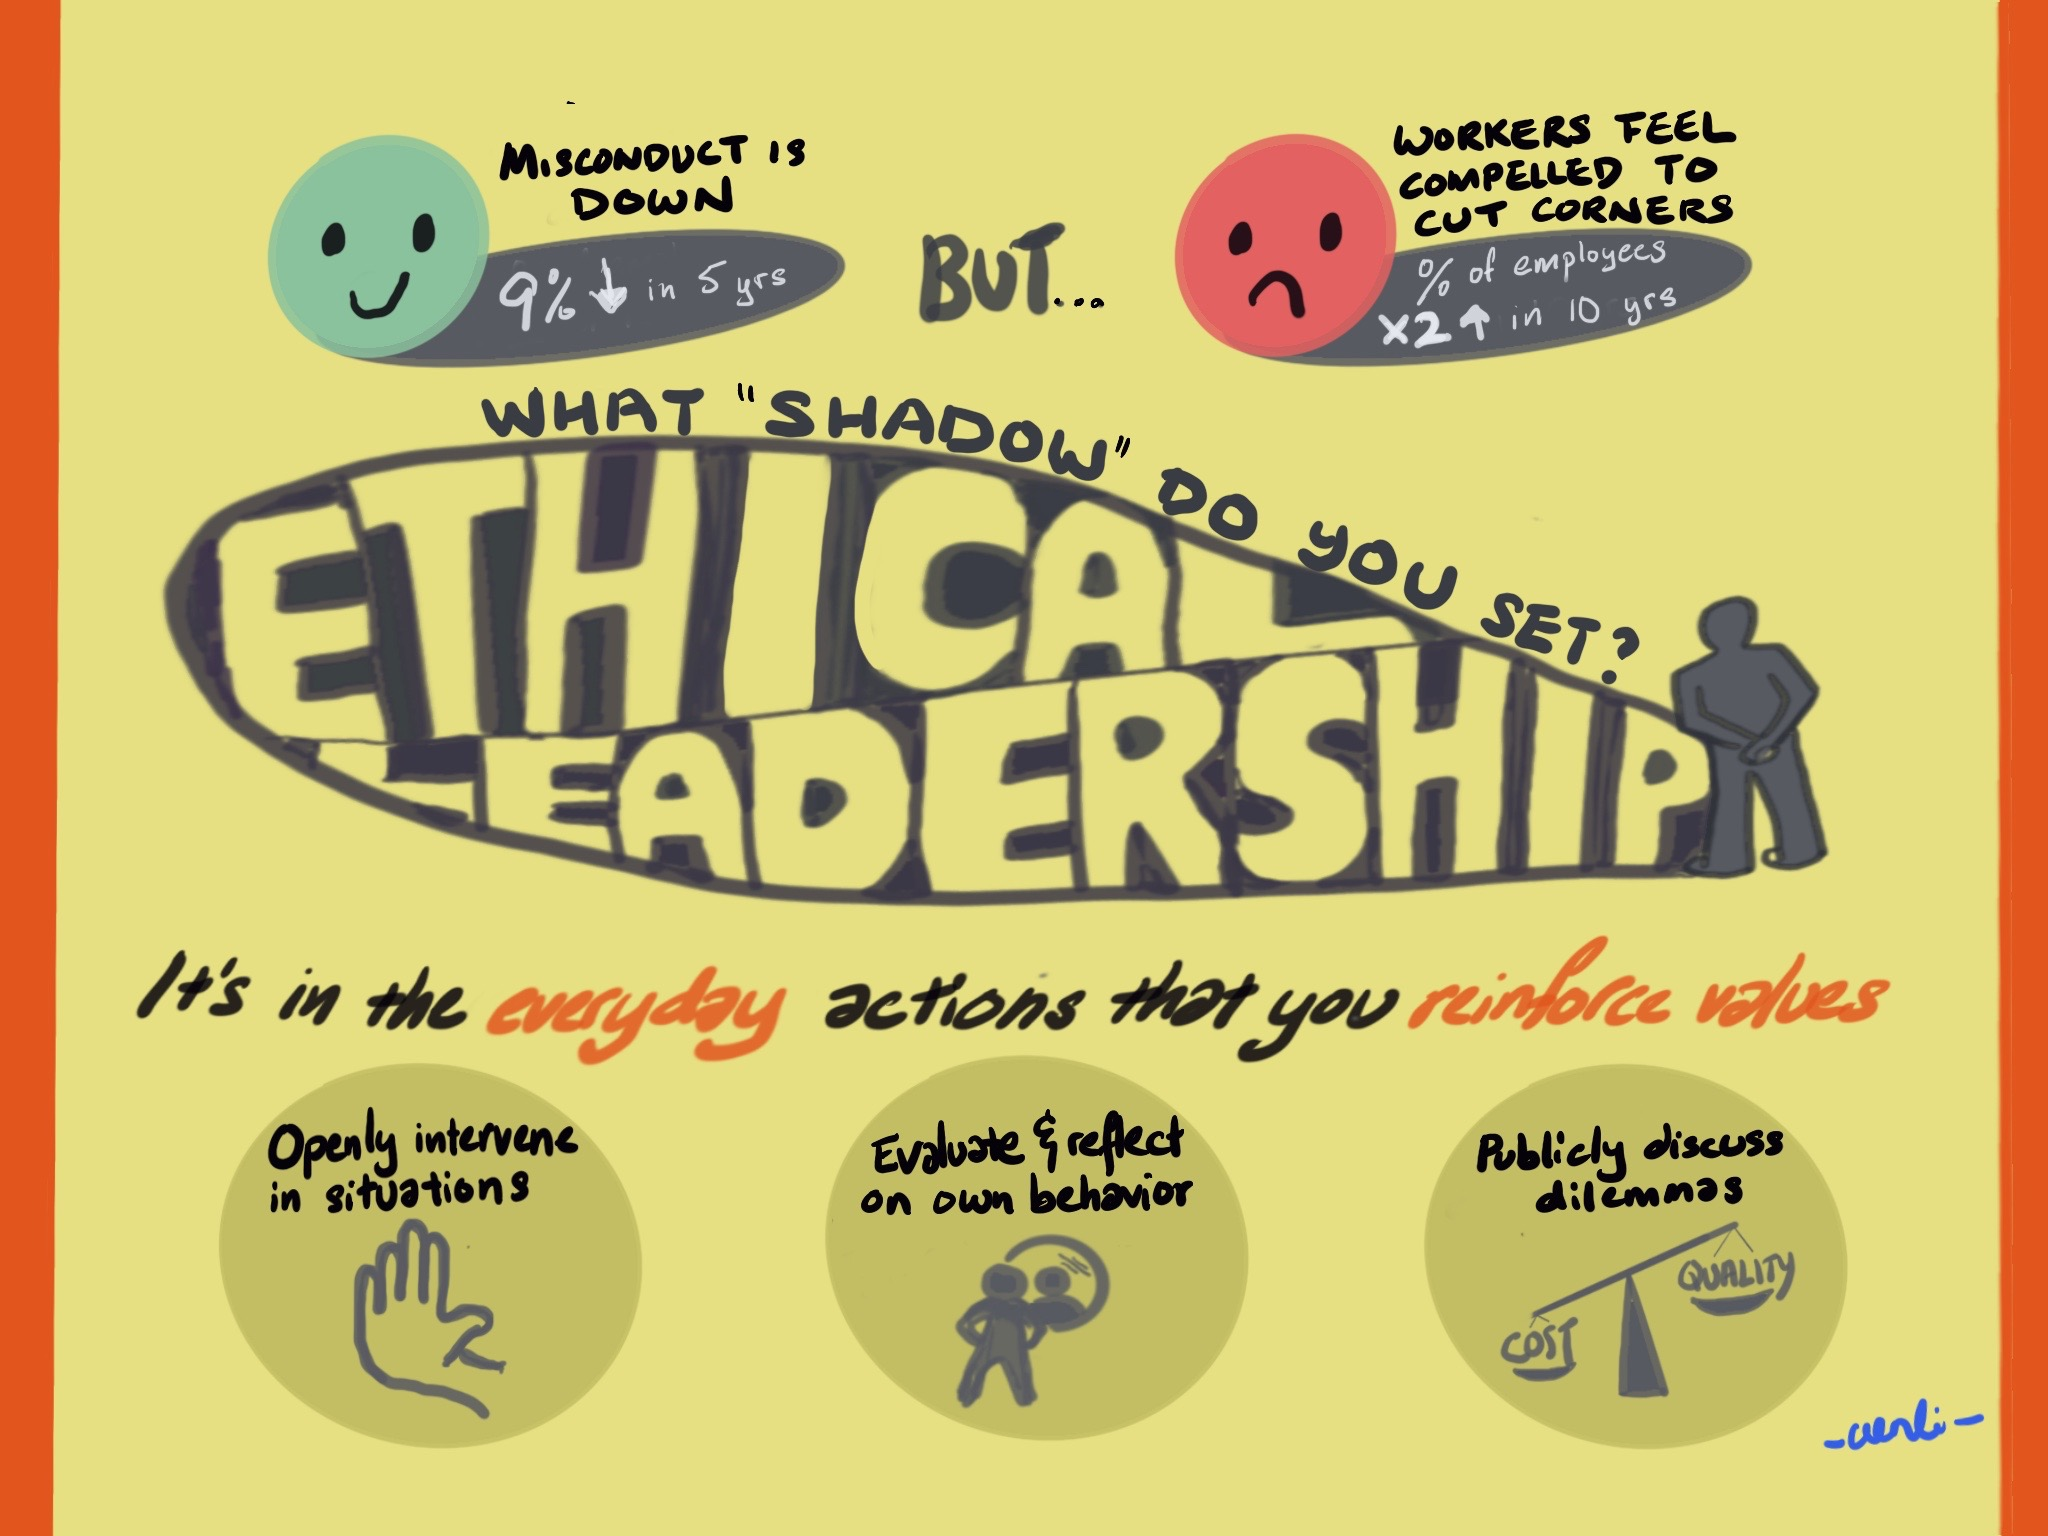 Ethical Leadership Image (1/1)